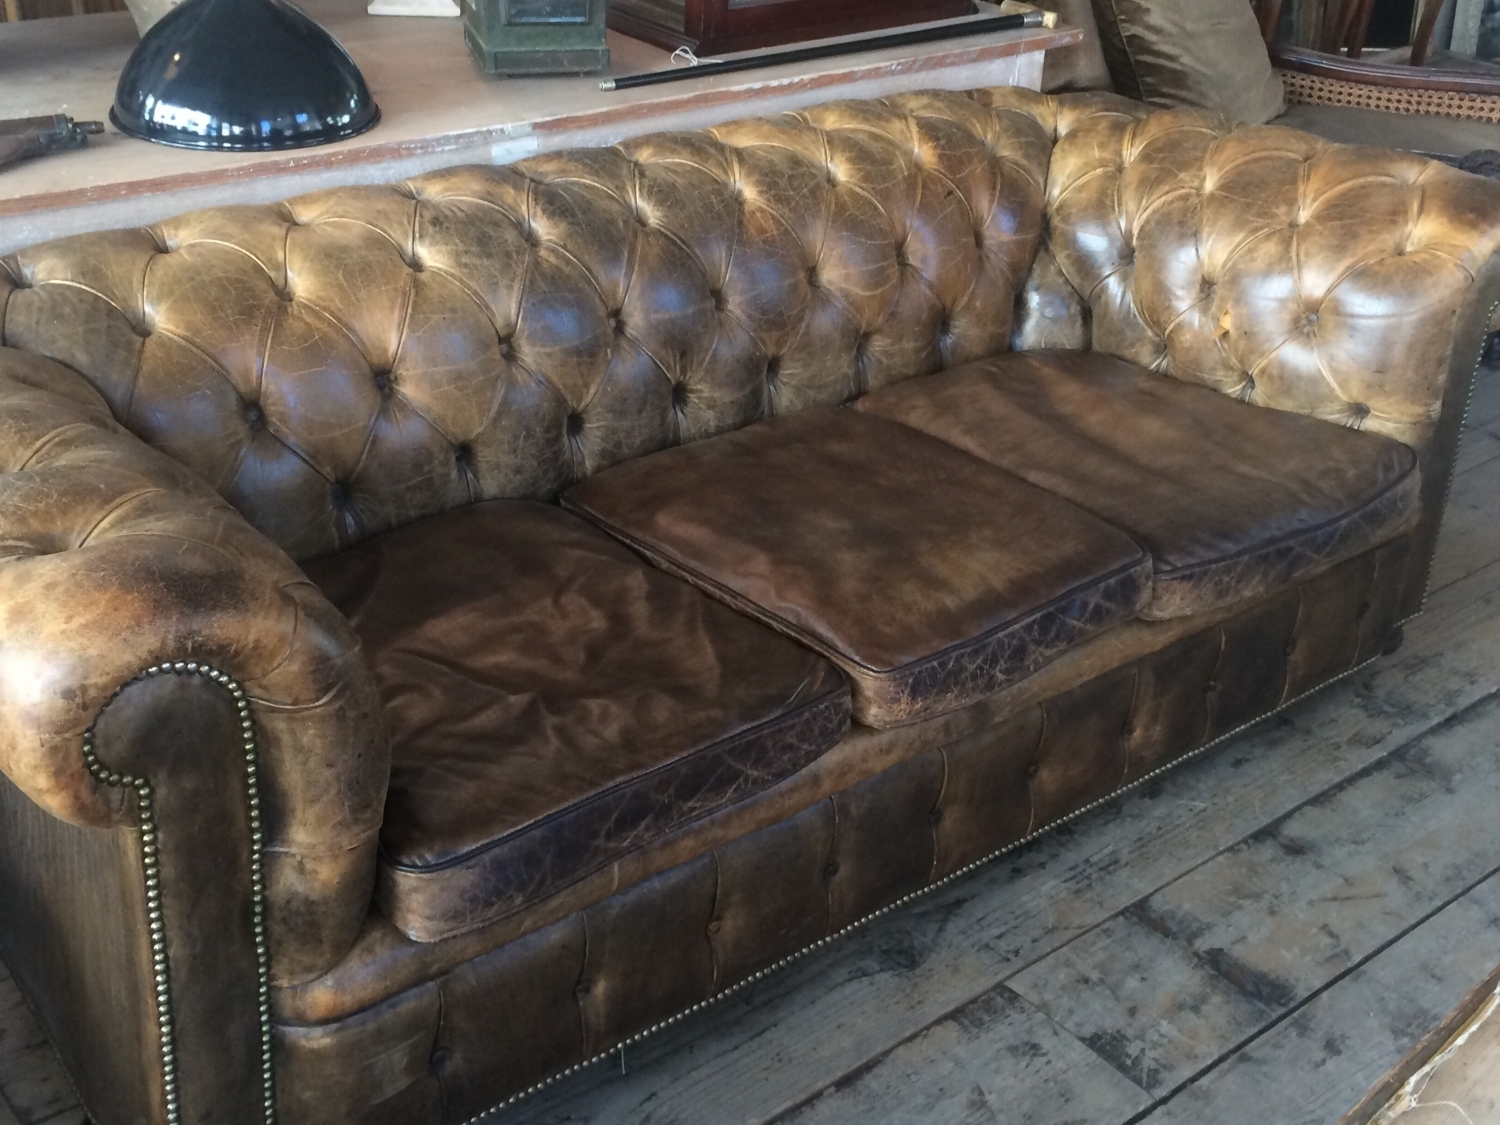 Vintage Chesterfield Sofas In Most Current Vintage Chesterfield Sofa In Furniture (View 9 of 20)